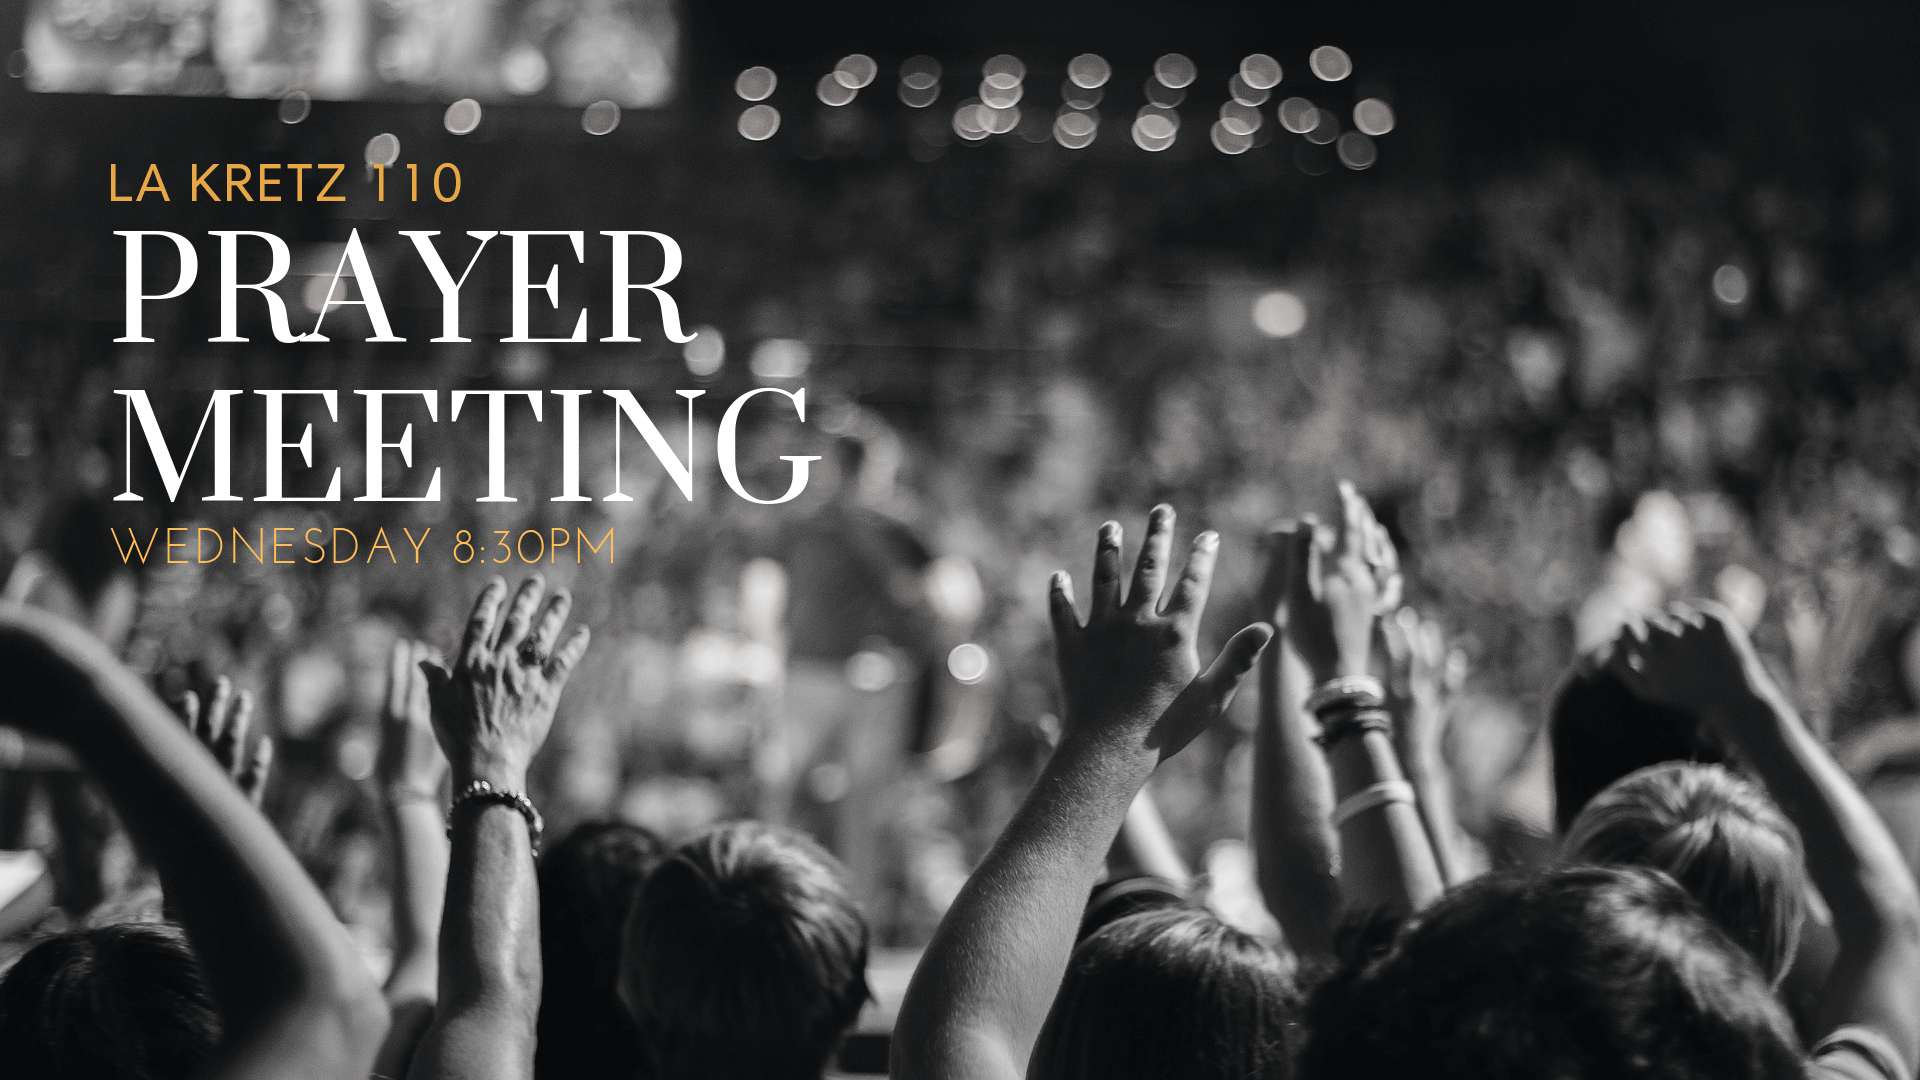 Join us for our weekly prayer meeting this Wednesday! Come and join us for a time of connecting with God and spiritual recharging. We will be meeting at  La Kretz 110  starting at  8:30PM .